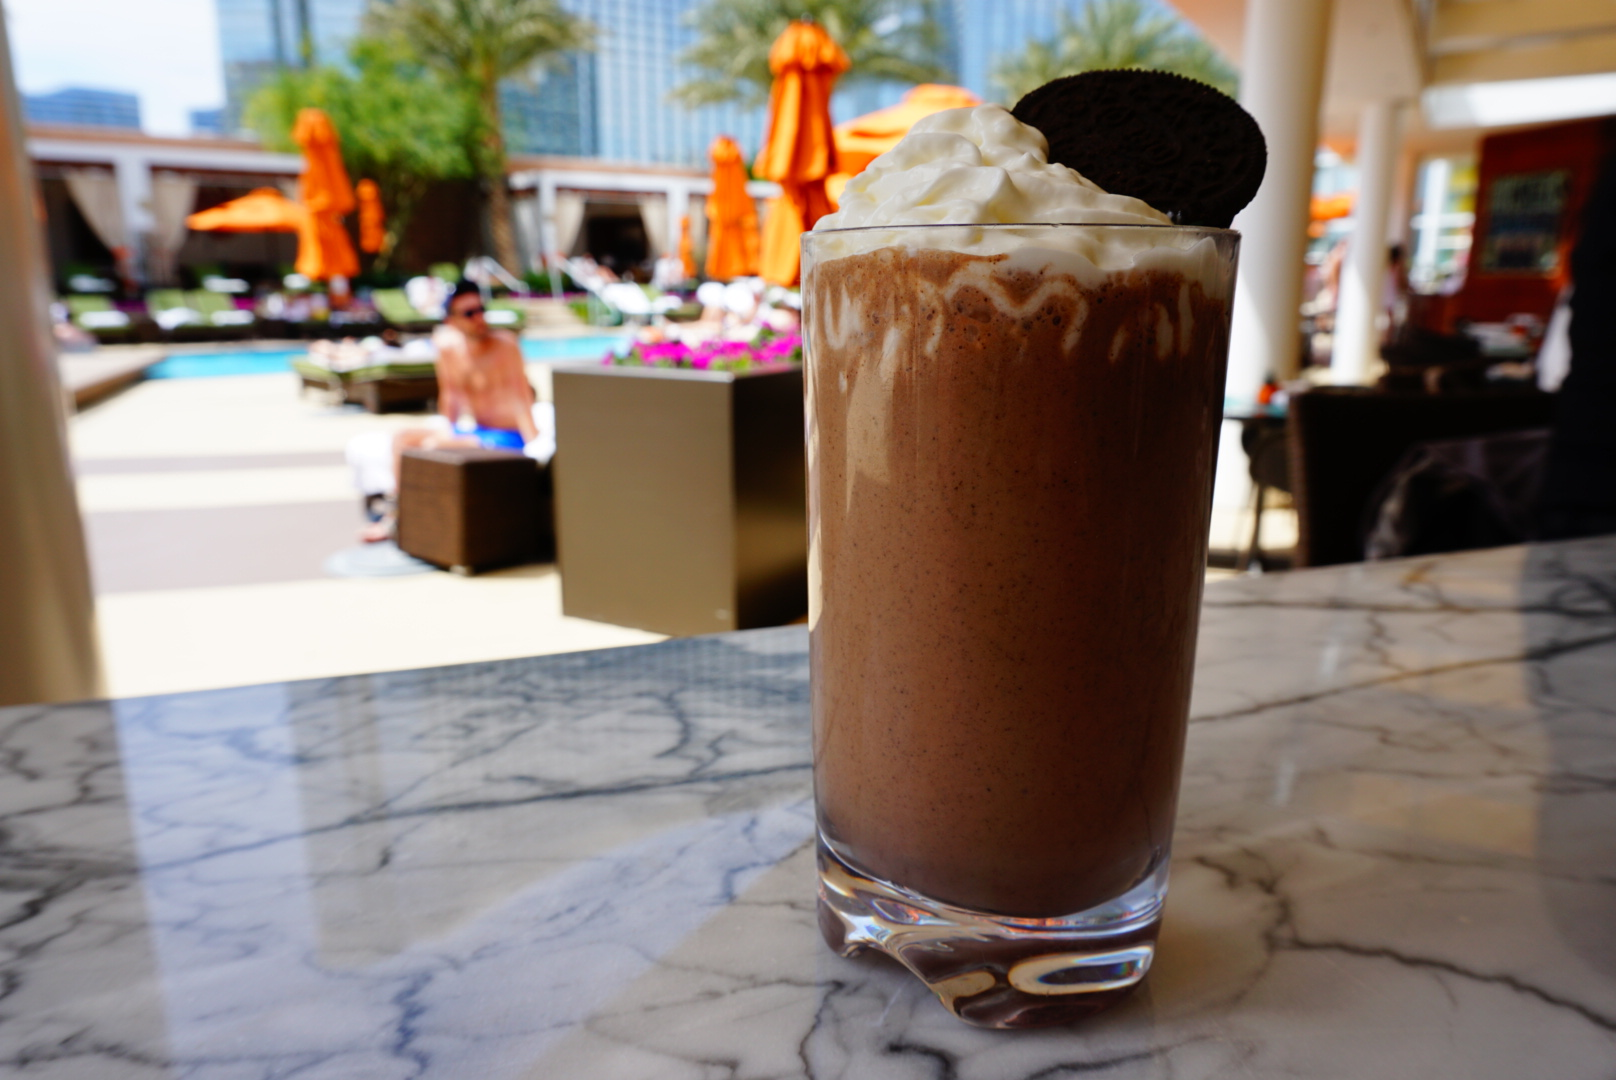 The Girl Scout Cookie shake, photo courtesy of Mandarin Oriental.